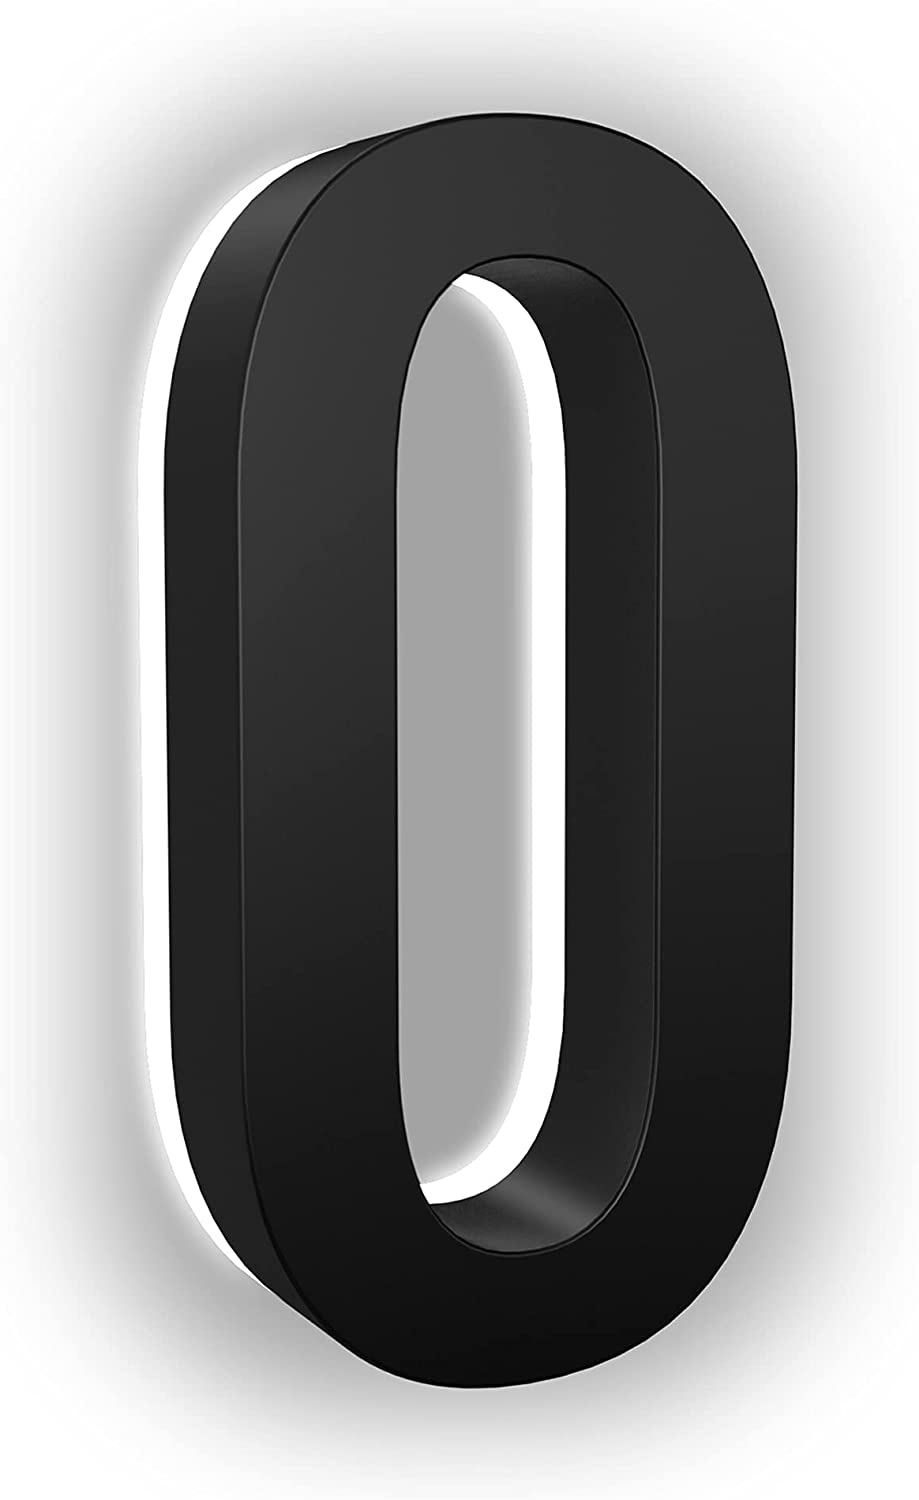 LN LUMANUMBERS 7 Inches Steel Backlit LED Floating Address Number, Up-Scale Modern Look, Lighted House Numbers, 0, Black, Illuminated Address Numbers